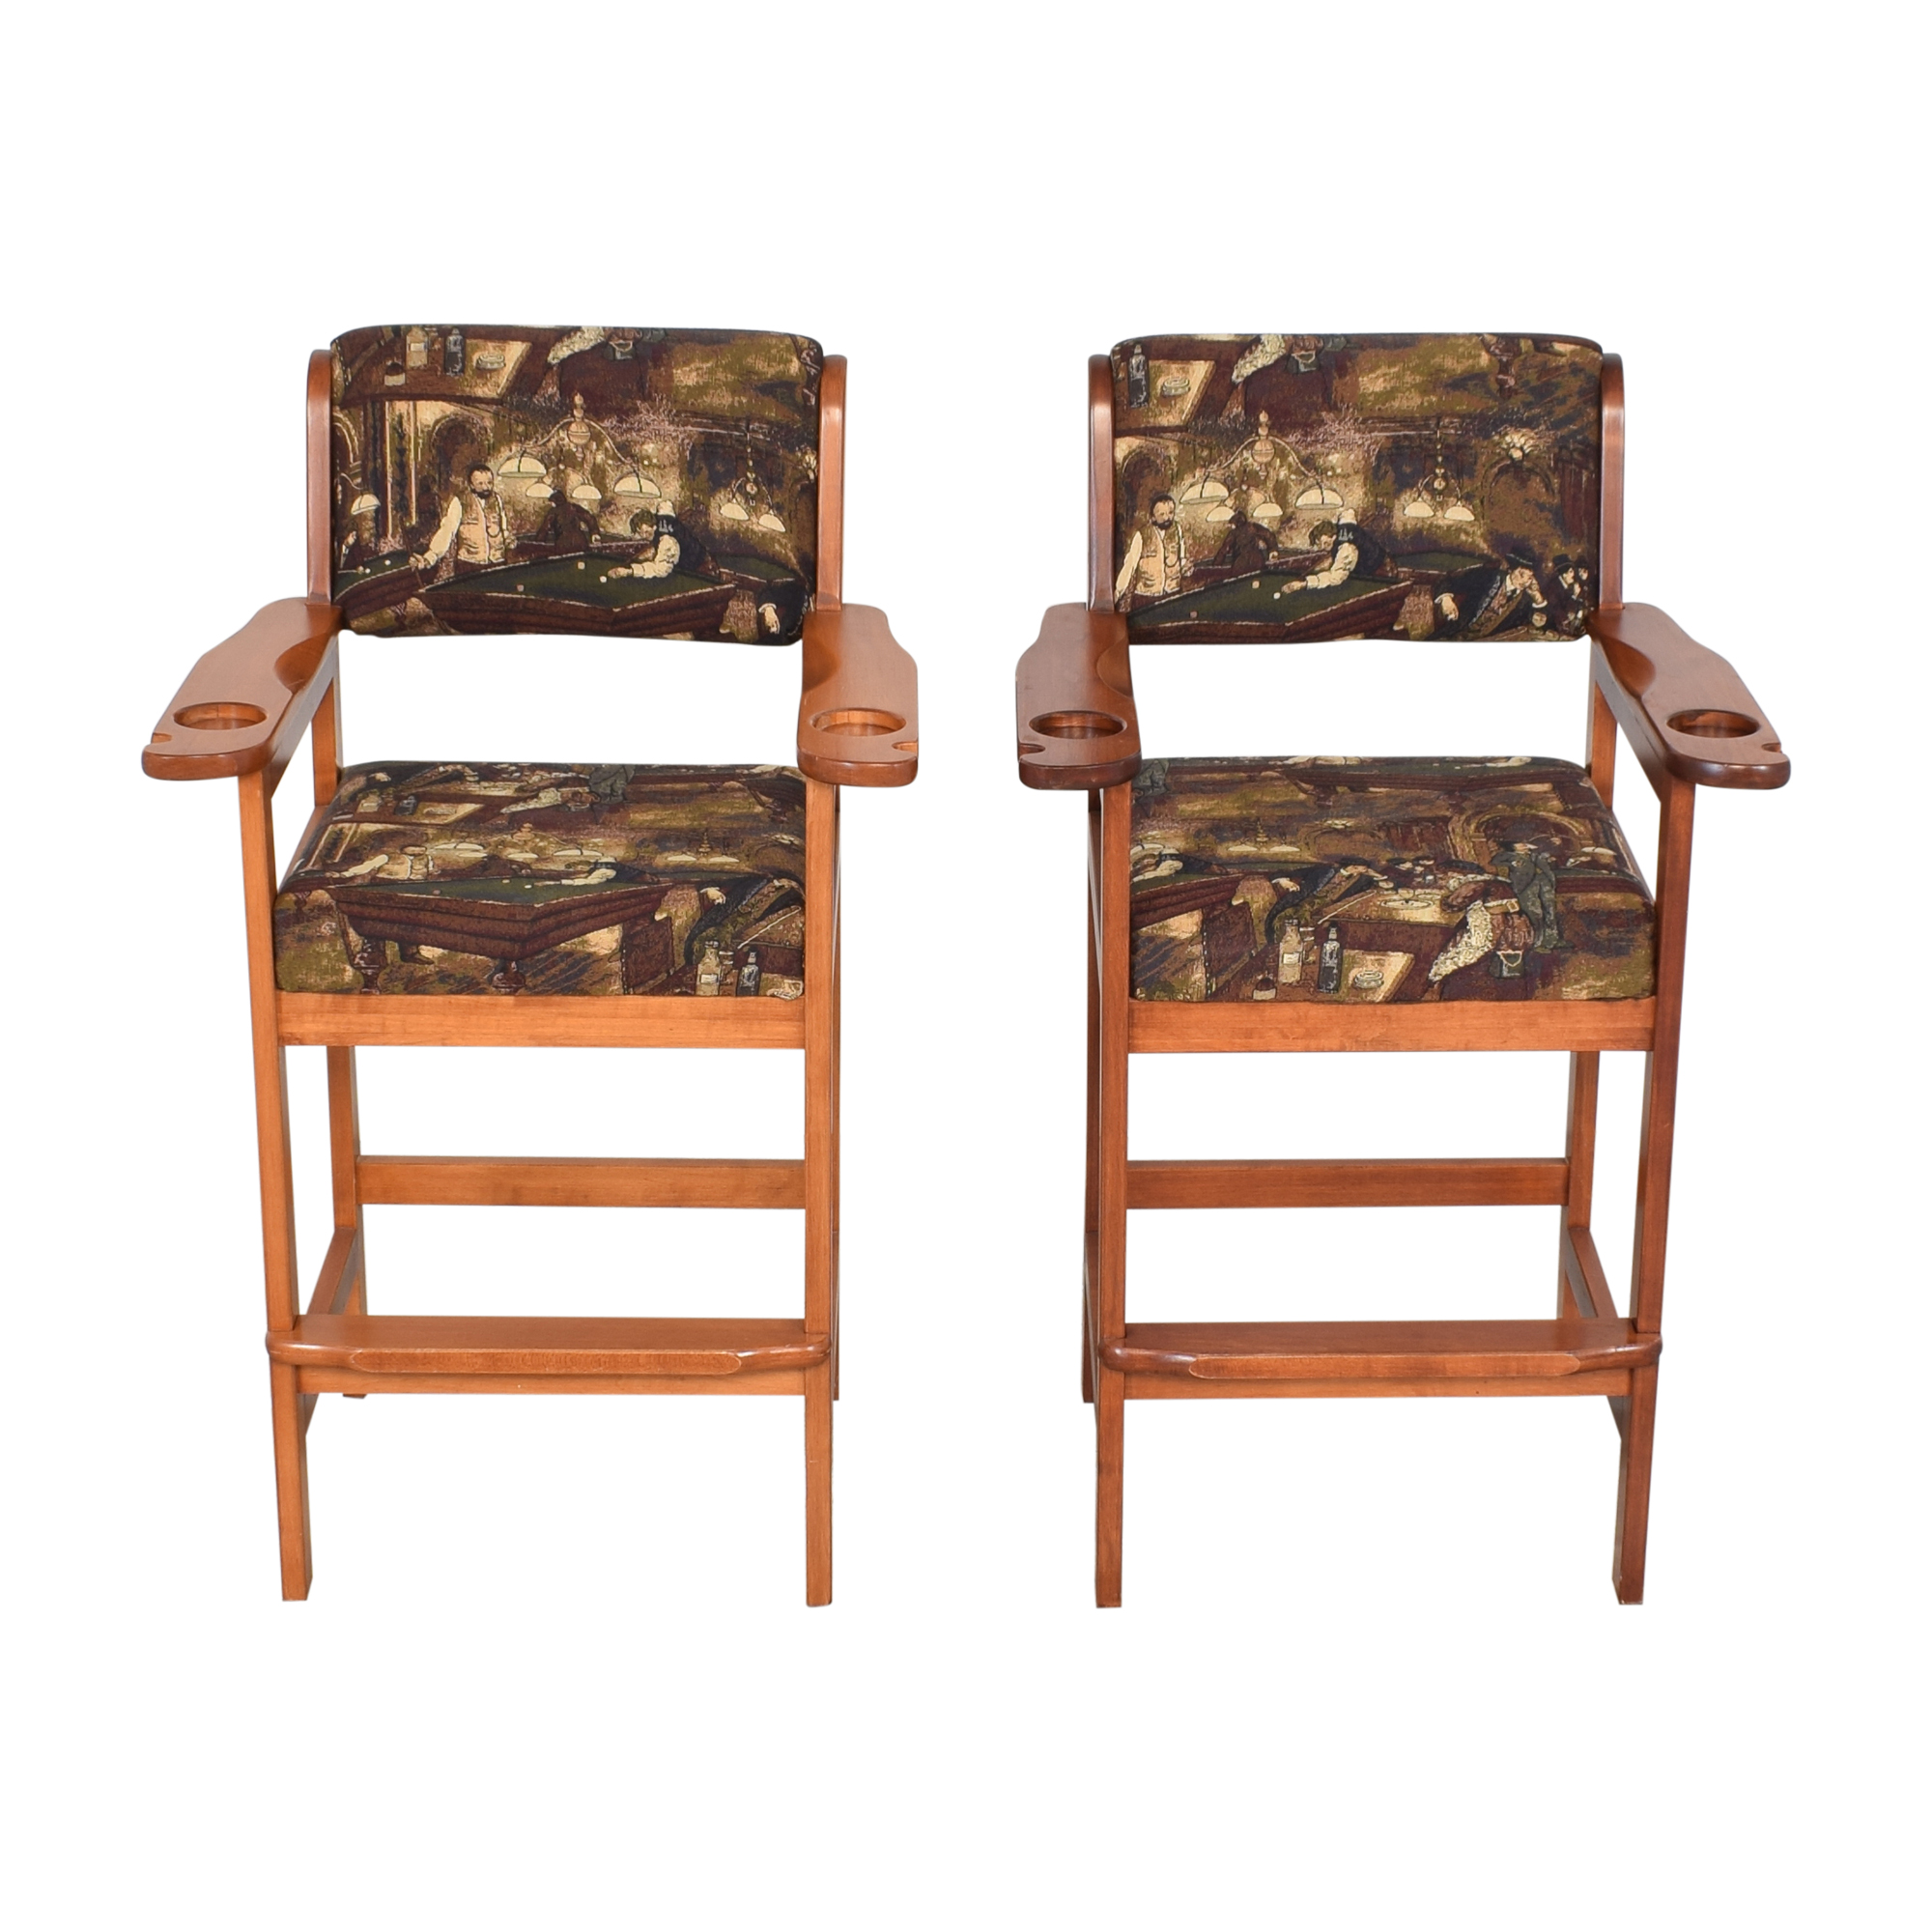 Whitaker Furniture Whitaker Furniture Bar Stools second hand